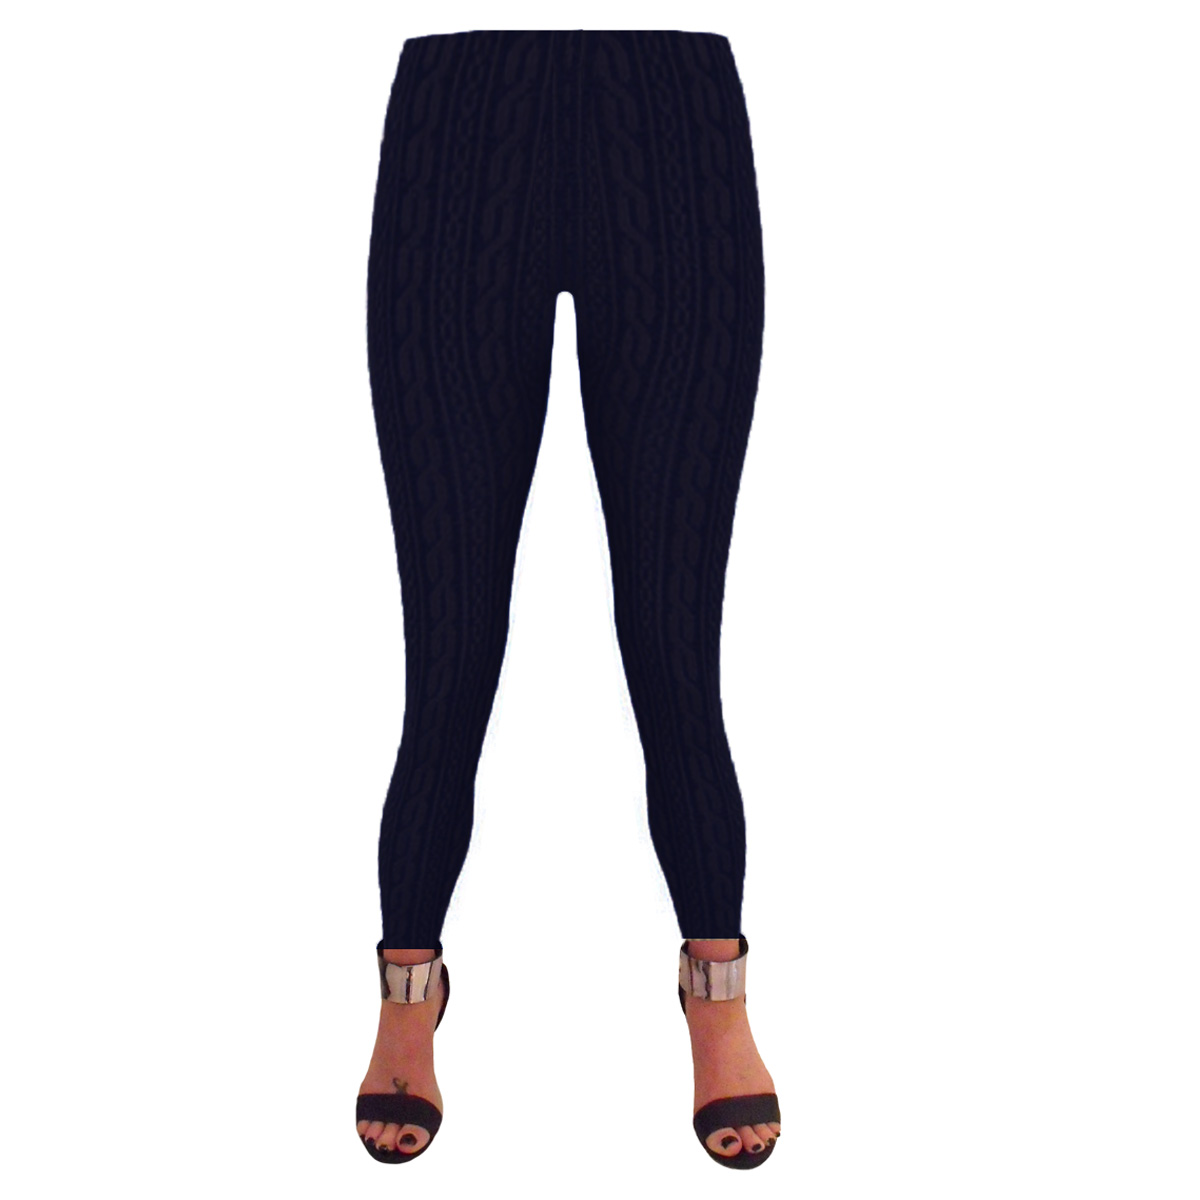 Ladies-Womens-Thick-Black-Navy-Ribbed-Winter-Fleece-Lined-Leggings